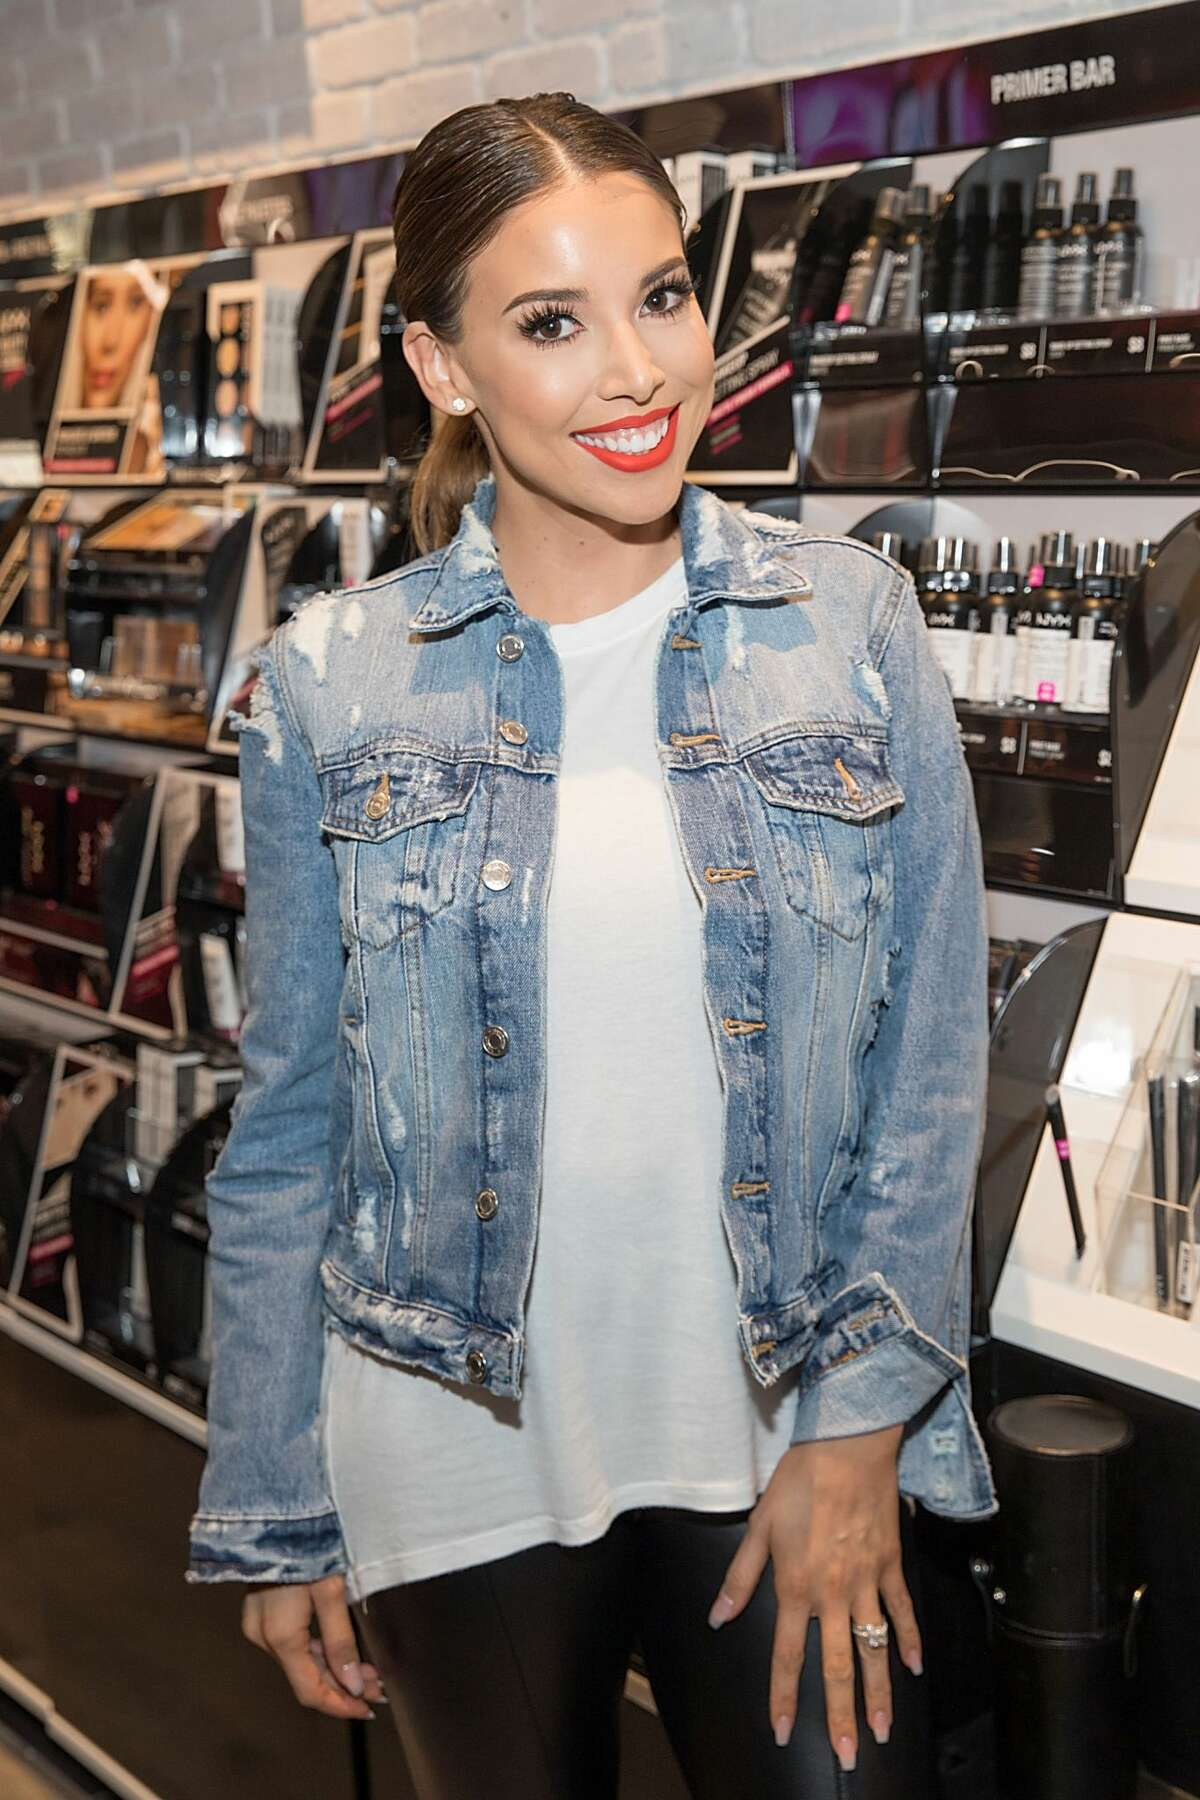 SAN ANTONIO, TX - FEBRUARY 25: Lustrelux @lustrelux attends the NYX Professional Makeup Store Grand Opening Meet & Greet at The Shops at La Cantera on February 25, 2017 in San Antonio, Texas. (Photo by Rick Kern/Getty Images for NYX Professional Makeup)